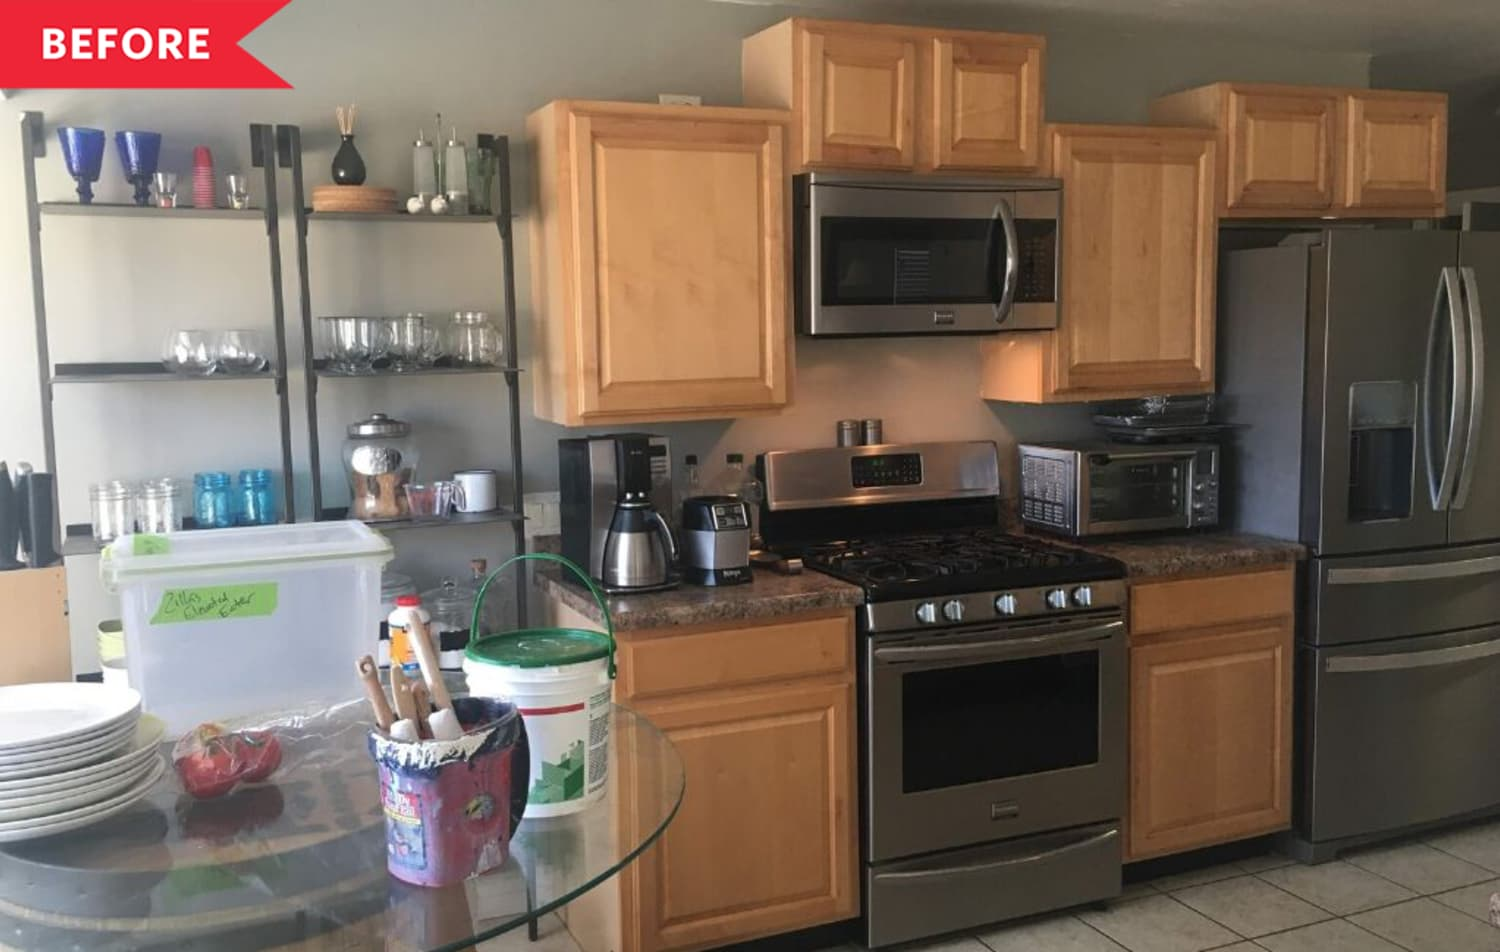 Before and After: A $3,000 Kitchen Redo with IKEA Cabinets and Farmhouse Style